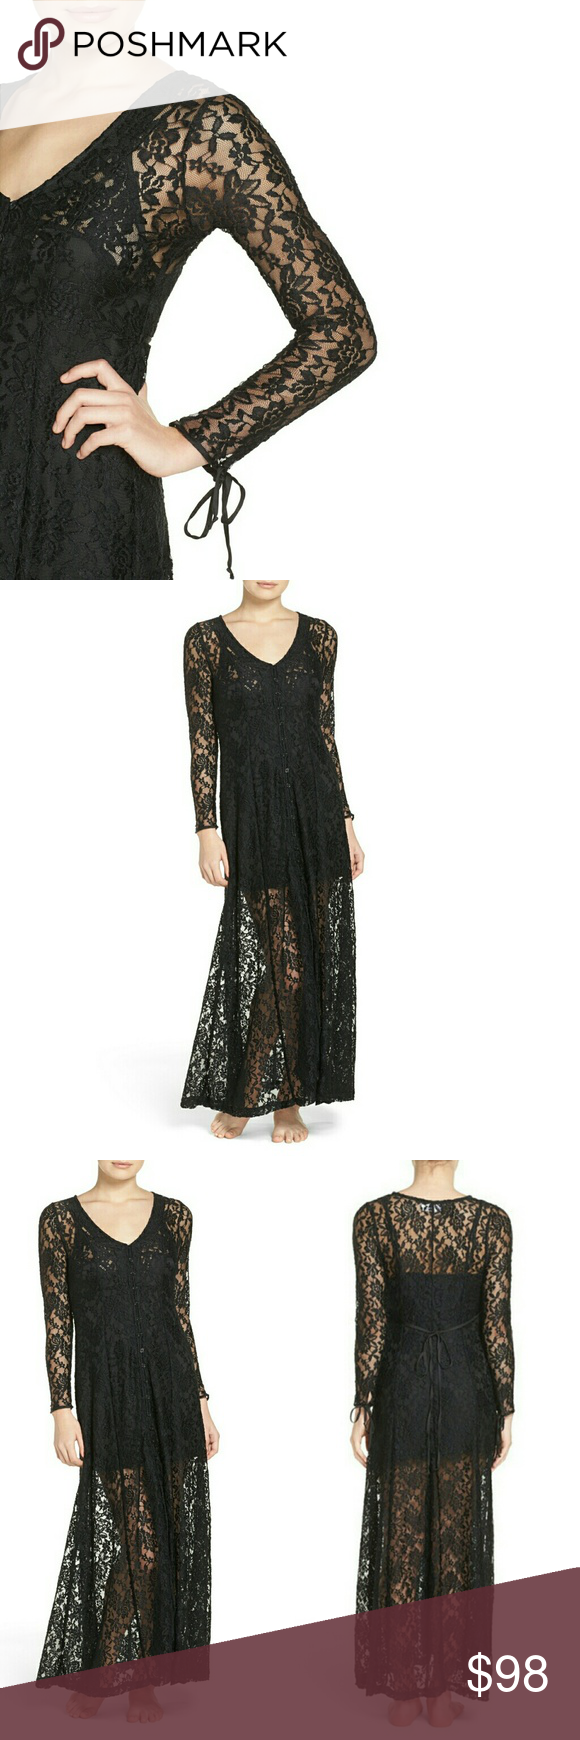 Band of gypsies sheer stretch lace duster nwt sm nwt flared skirt